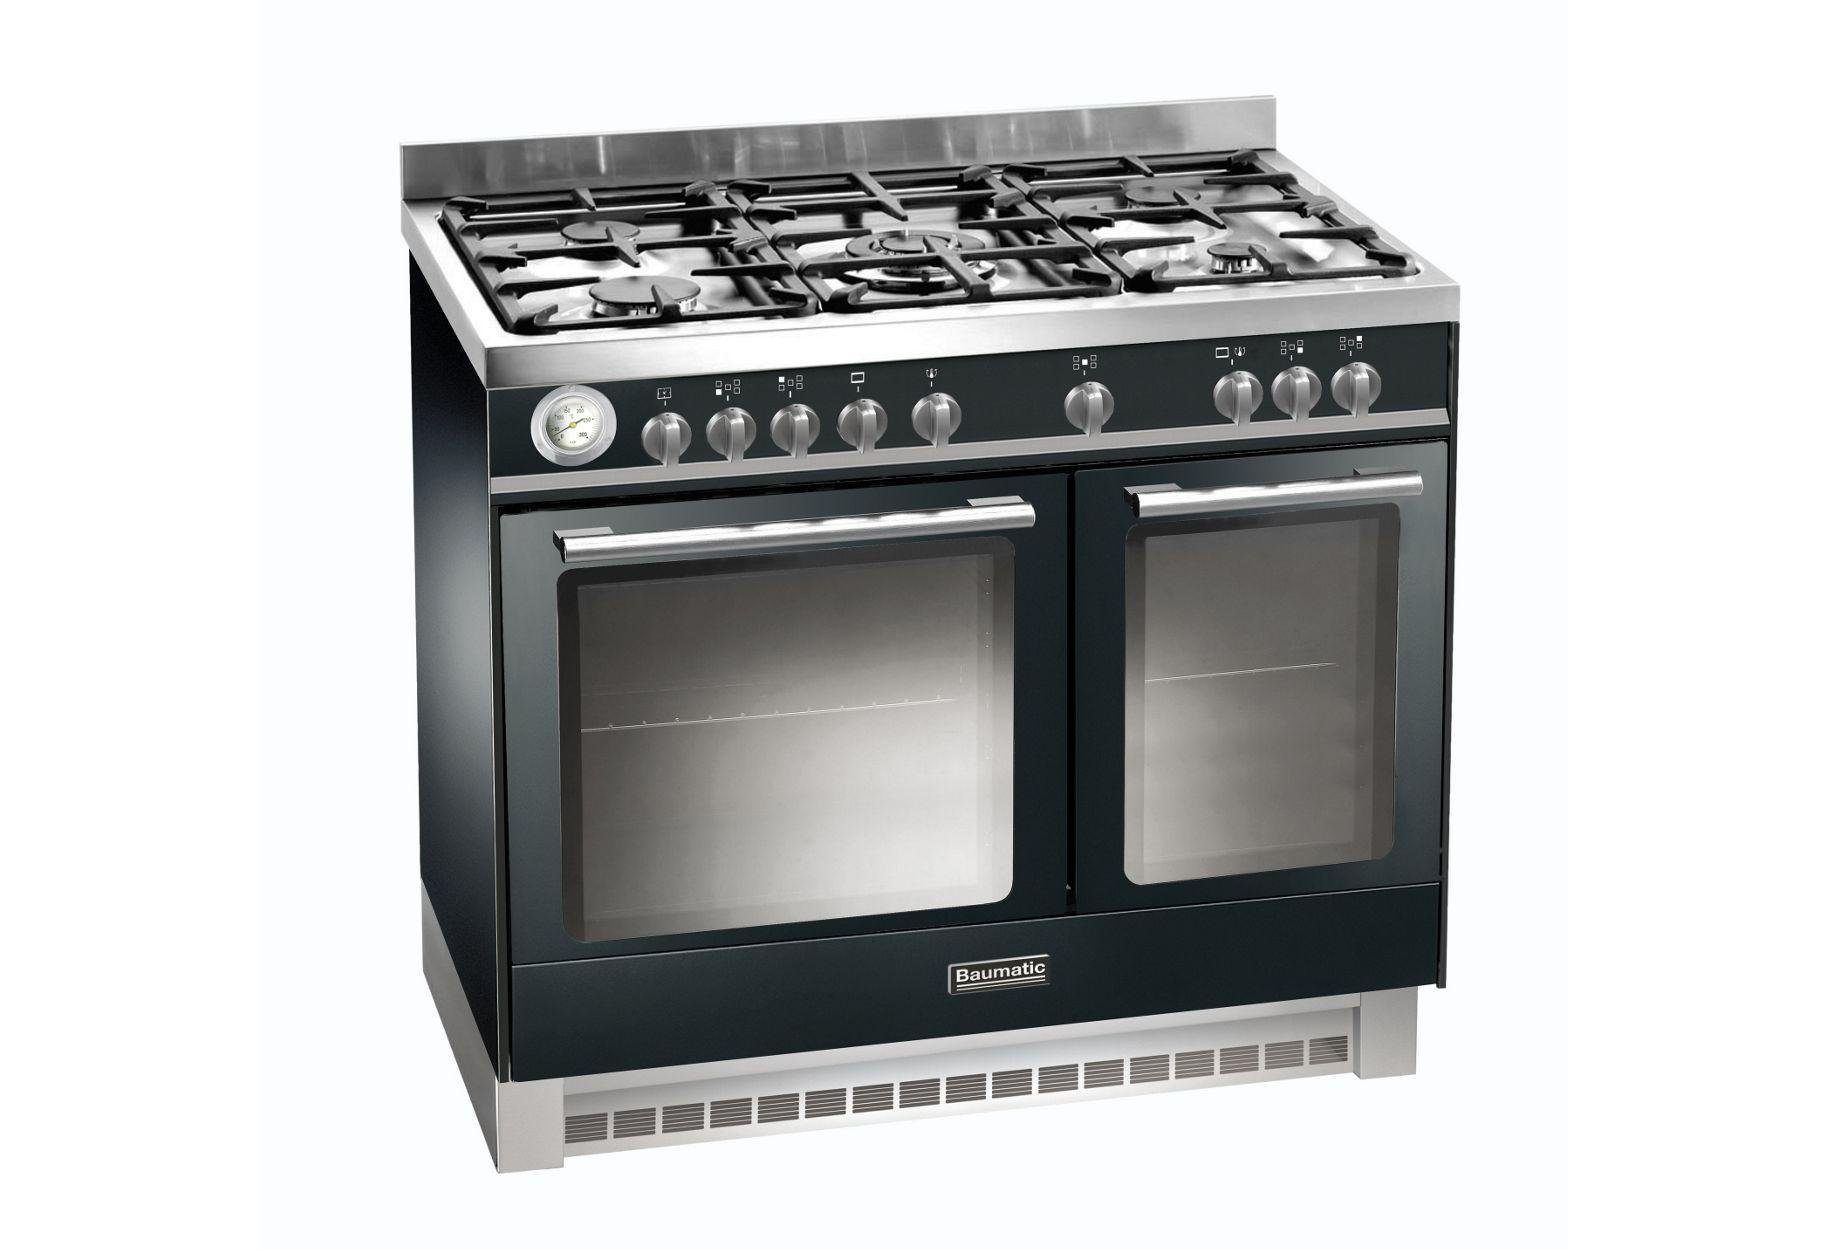 Image of Baumatic BCD925 Dual Fuel Range Cooker - Black.